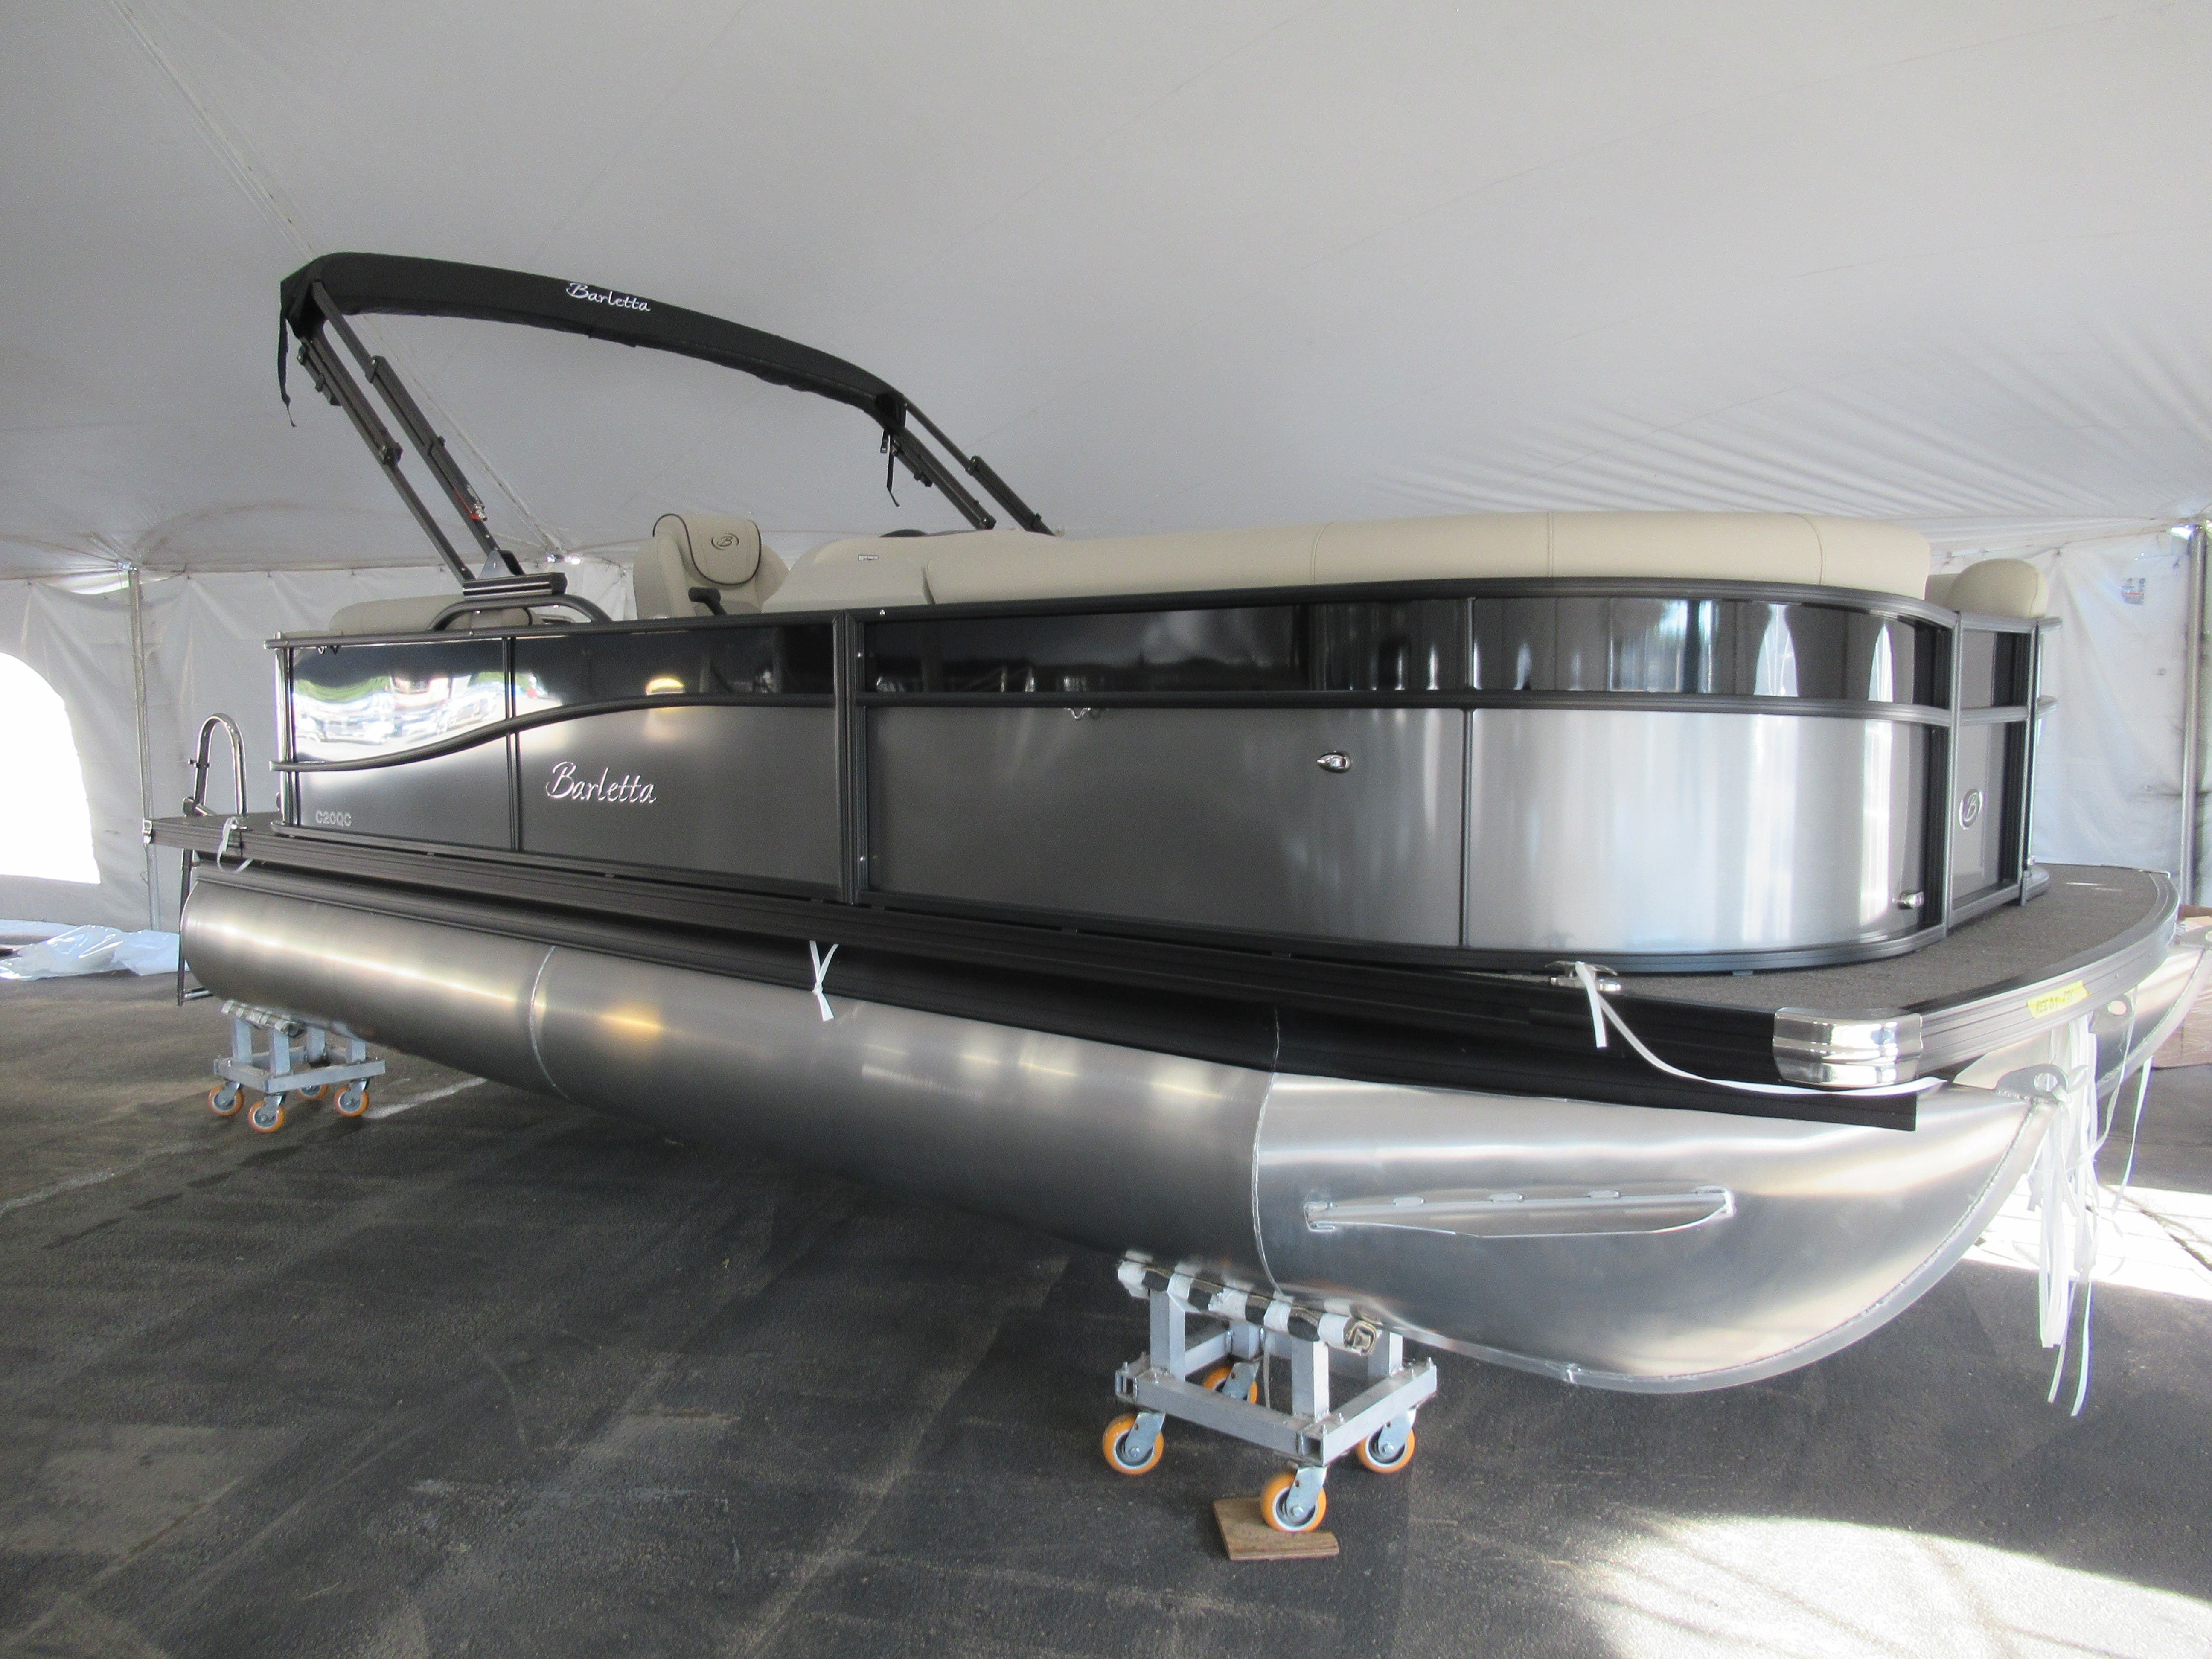 2021 Barletta boat for sale, model of the boat is C20QC & Image # 3 of 11